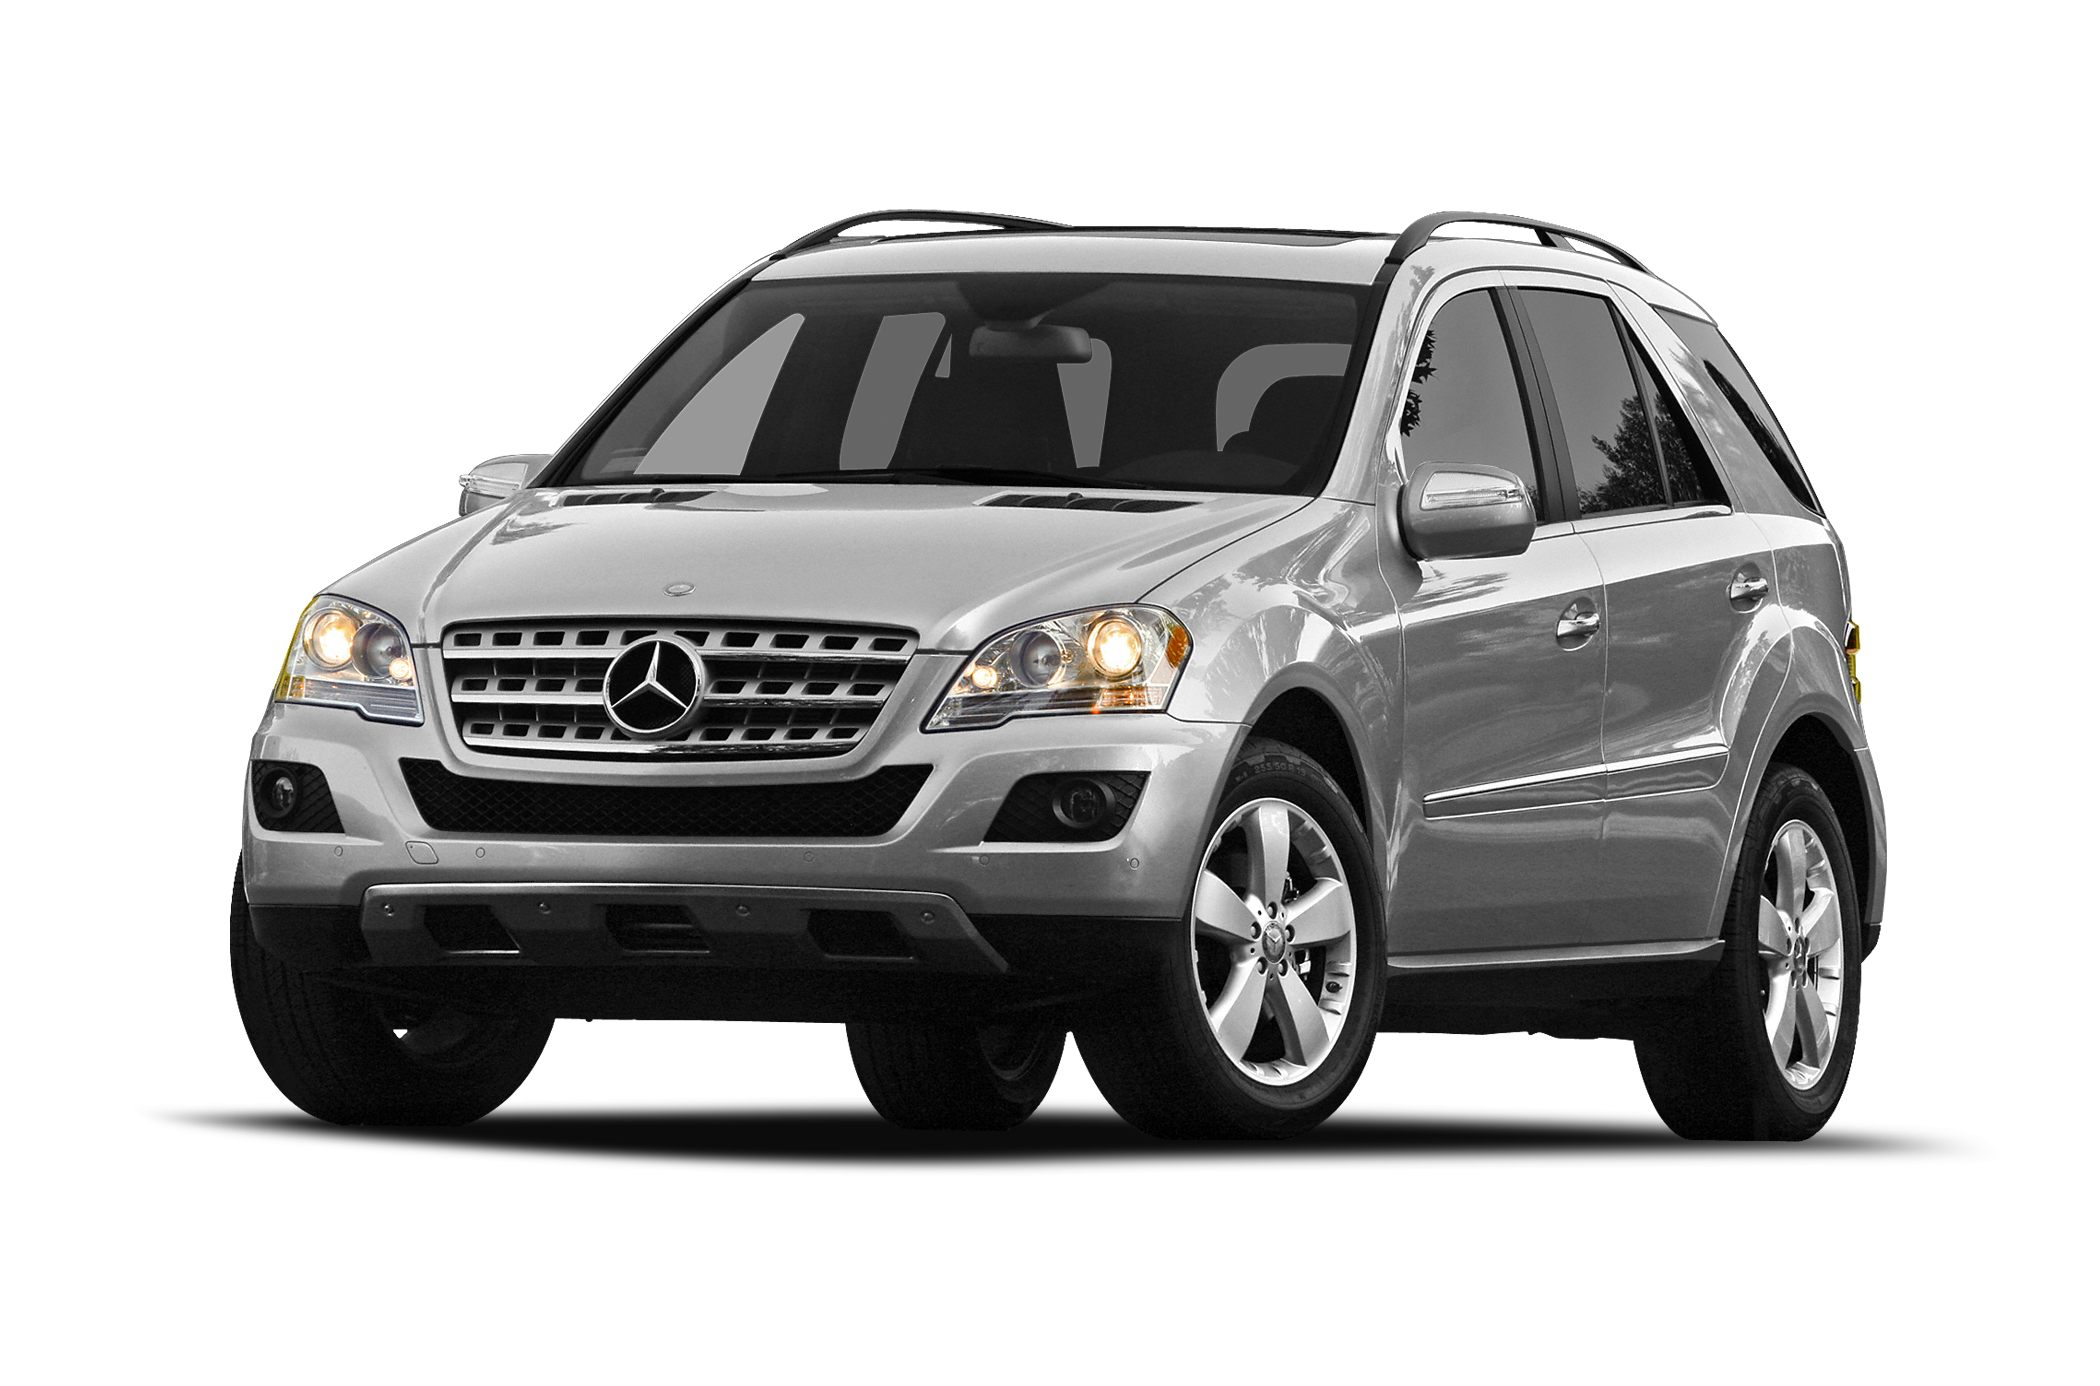 2010 MERCEDES M-Class ML350 4MATIC OUR PRICESYoure probably wondering why our prices are so much